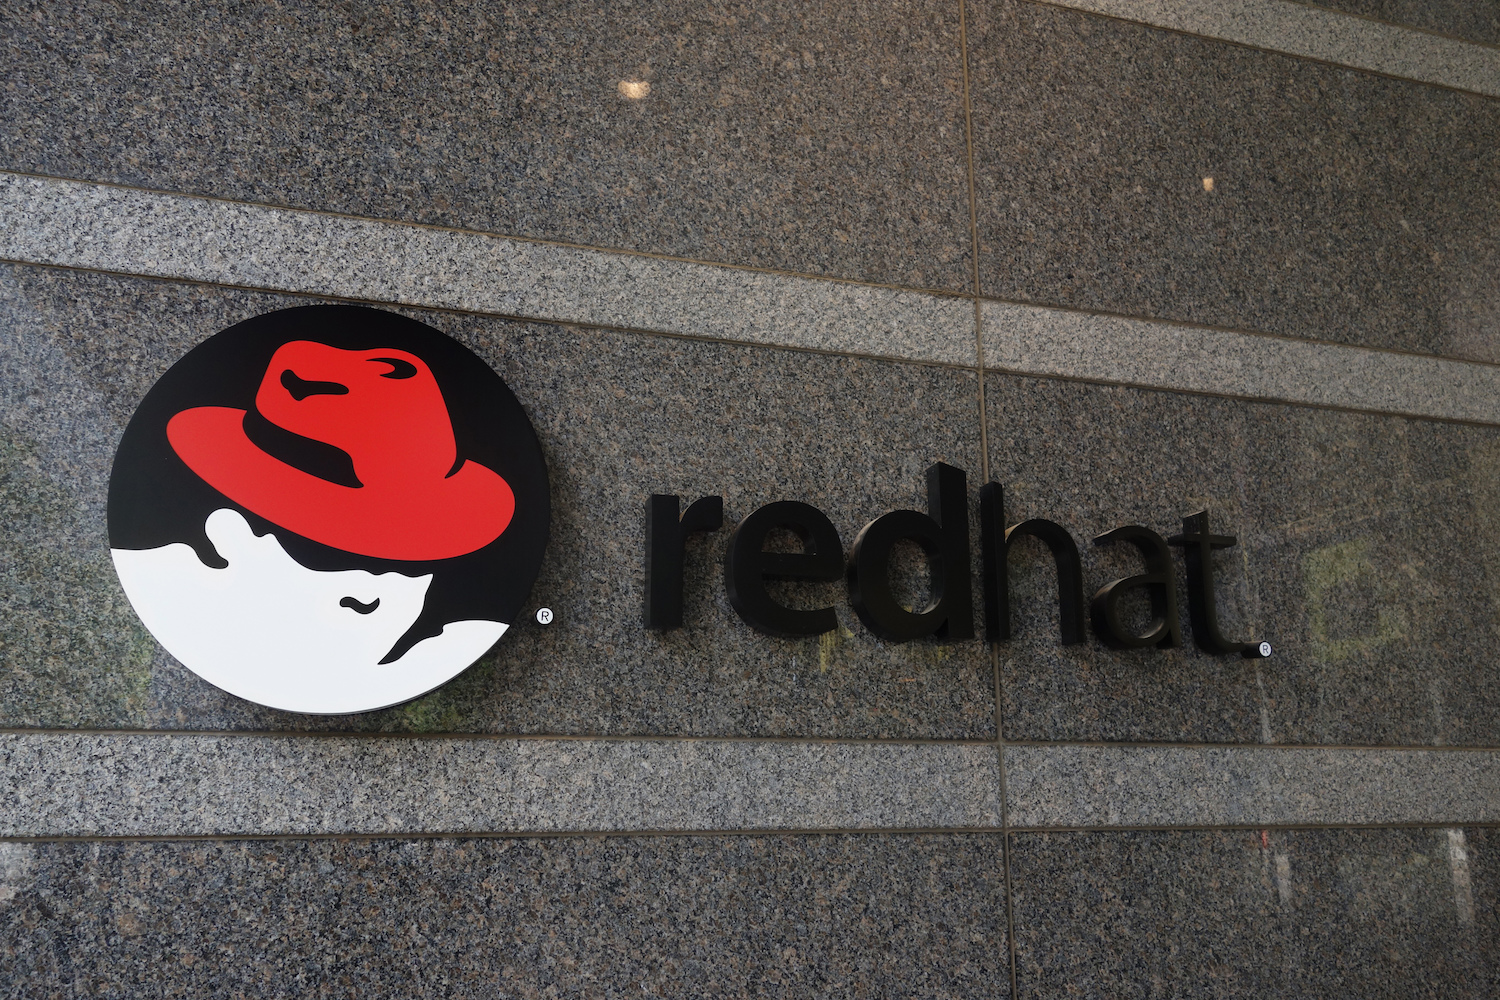 Red Hat building and logo